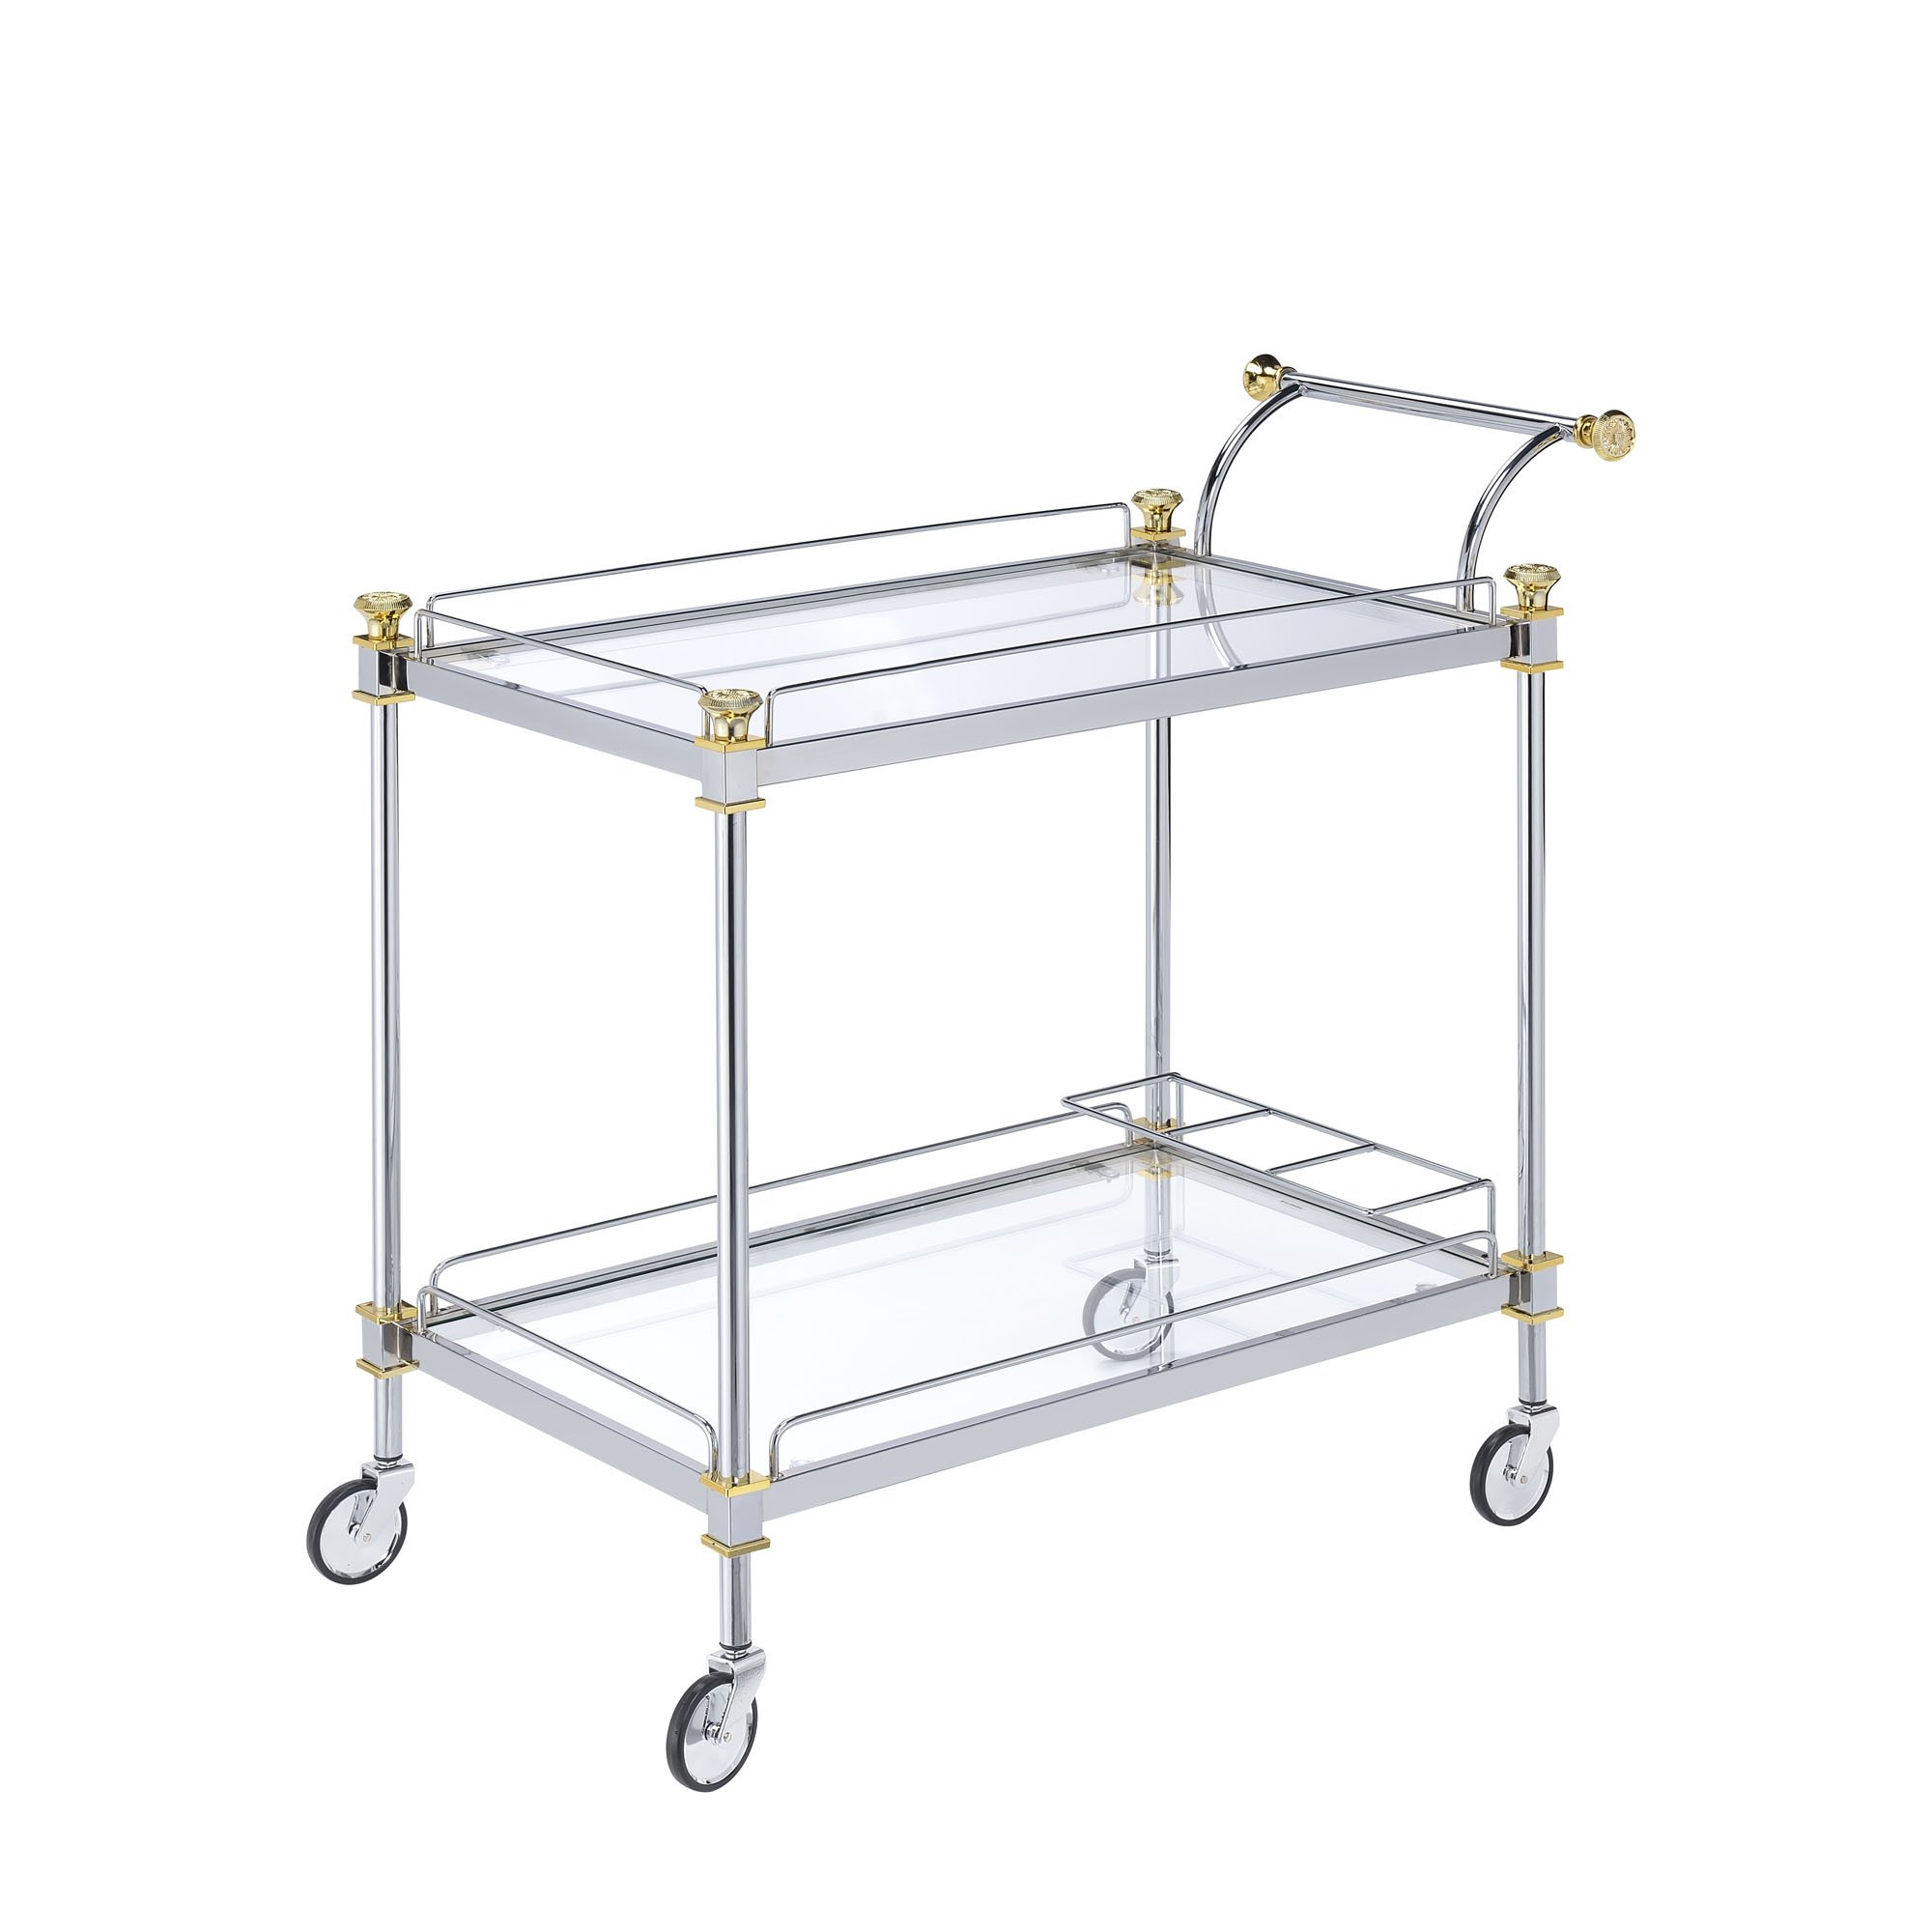 Klikel Silver Rolling Bar Cart With Glass Design - Two Tier Rolling Serving Carts For Kitchen, Home Decor And Drinks